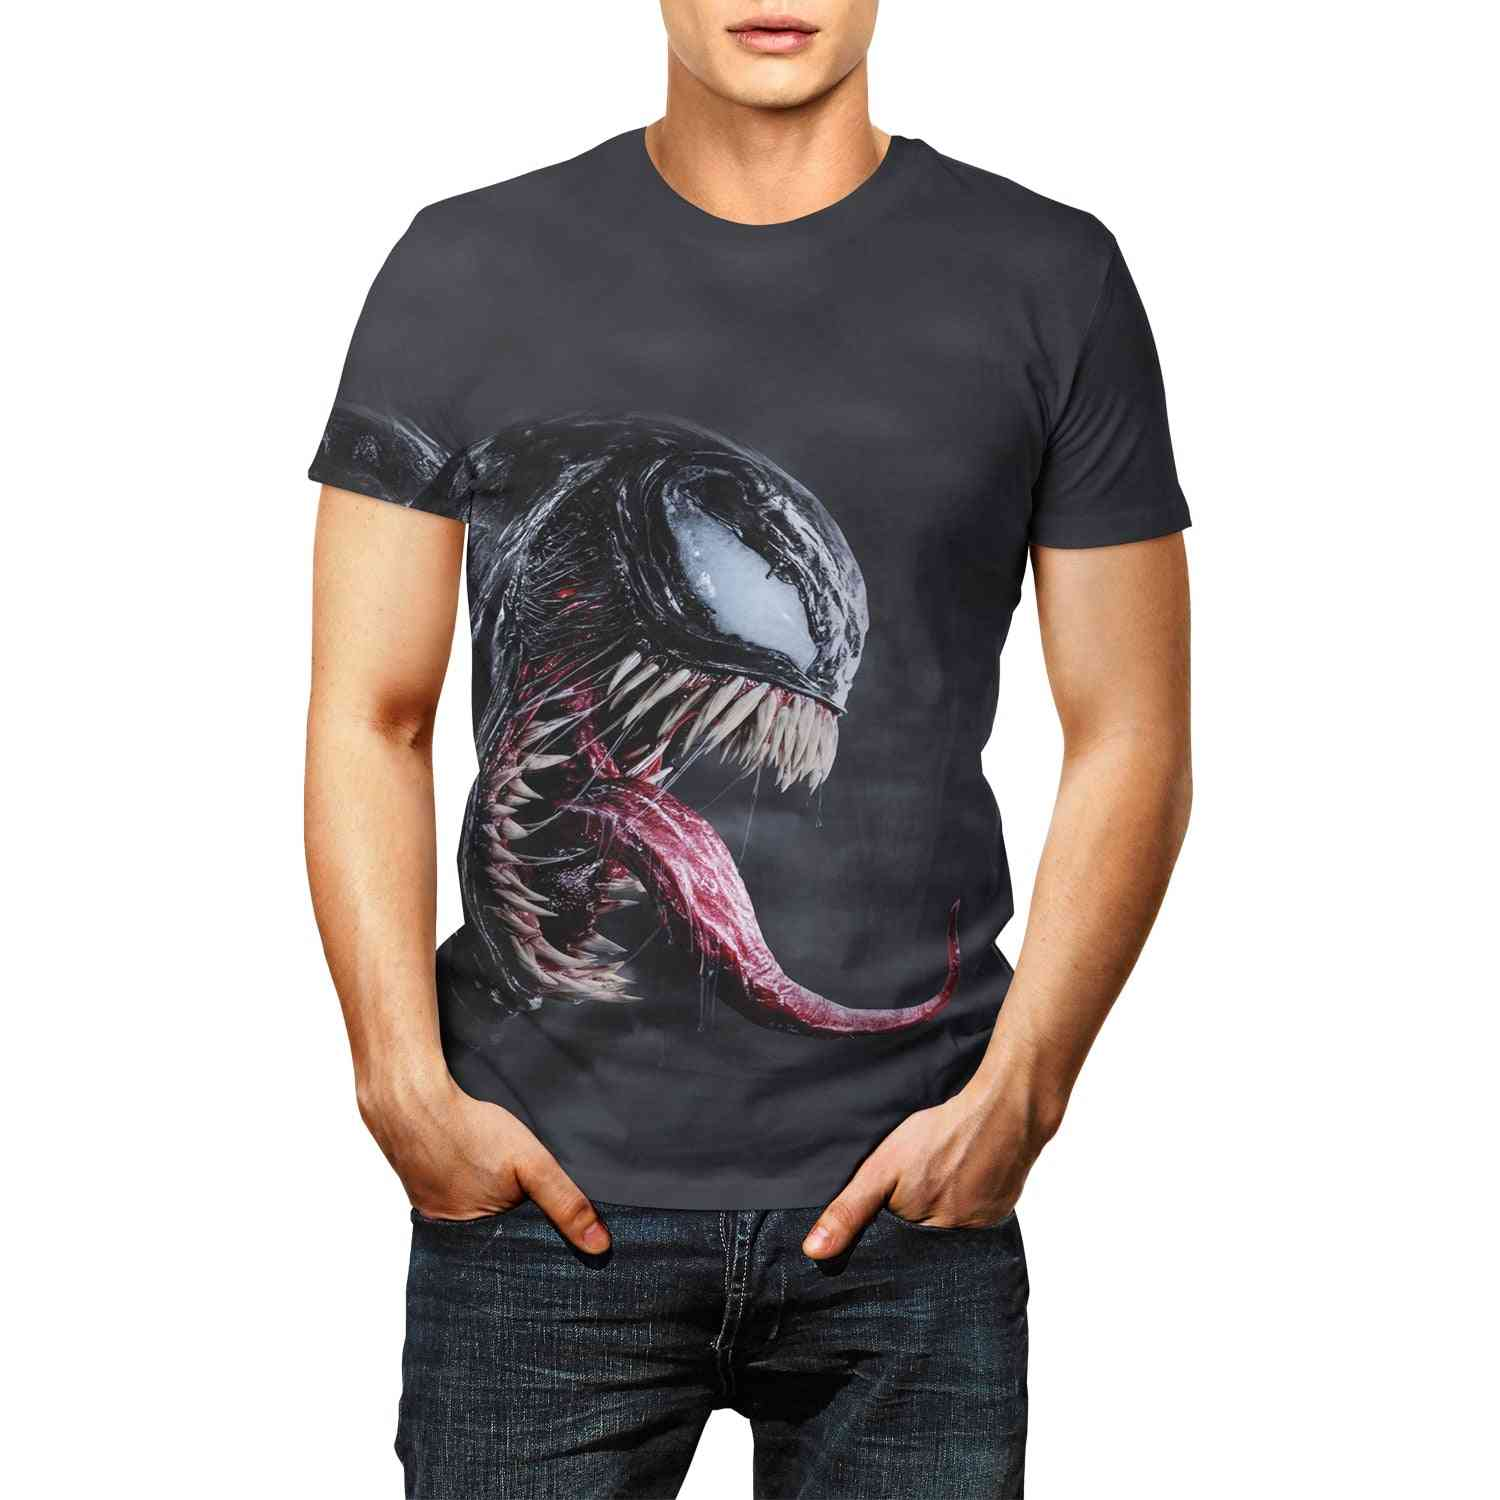 Men And Women Fashion Trend Youth Cool T-shirt